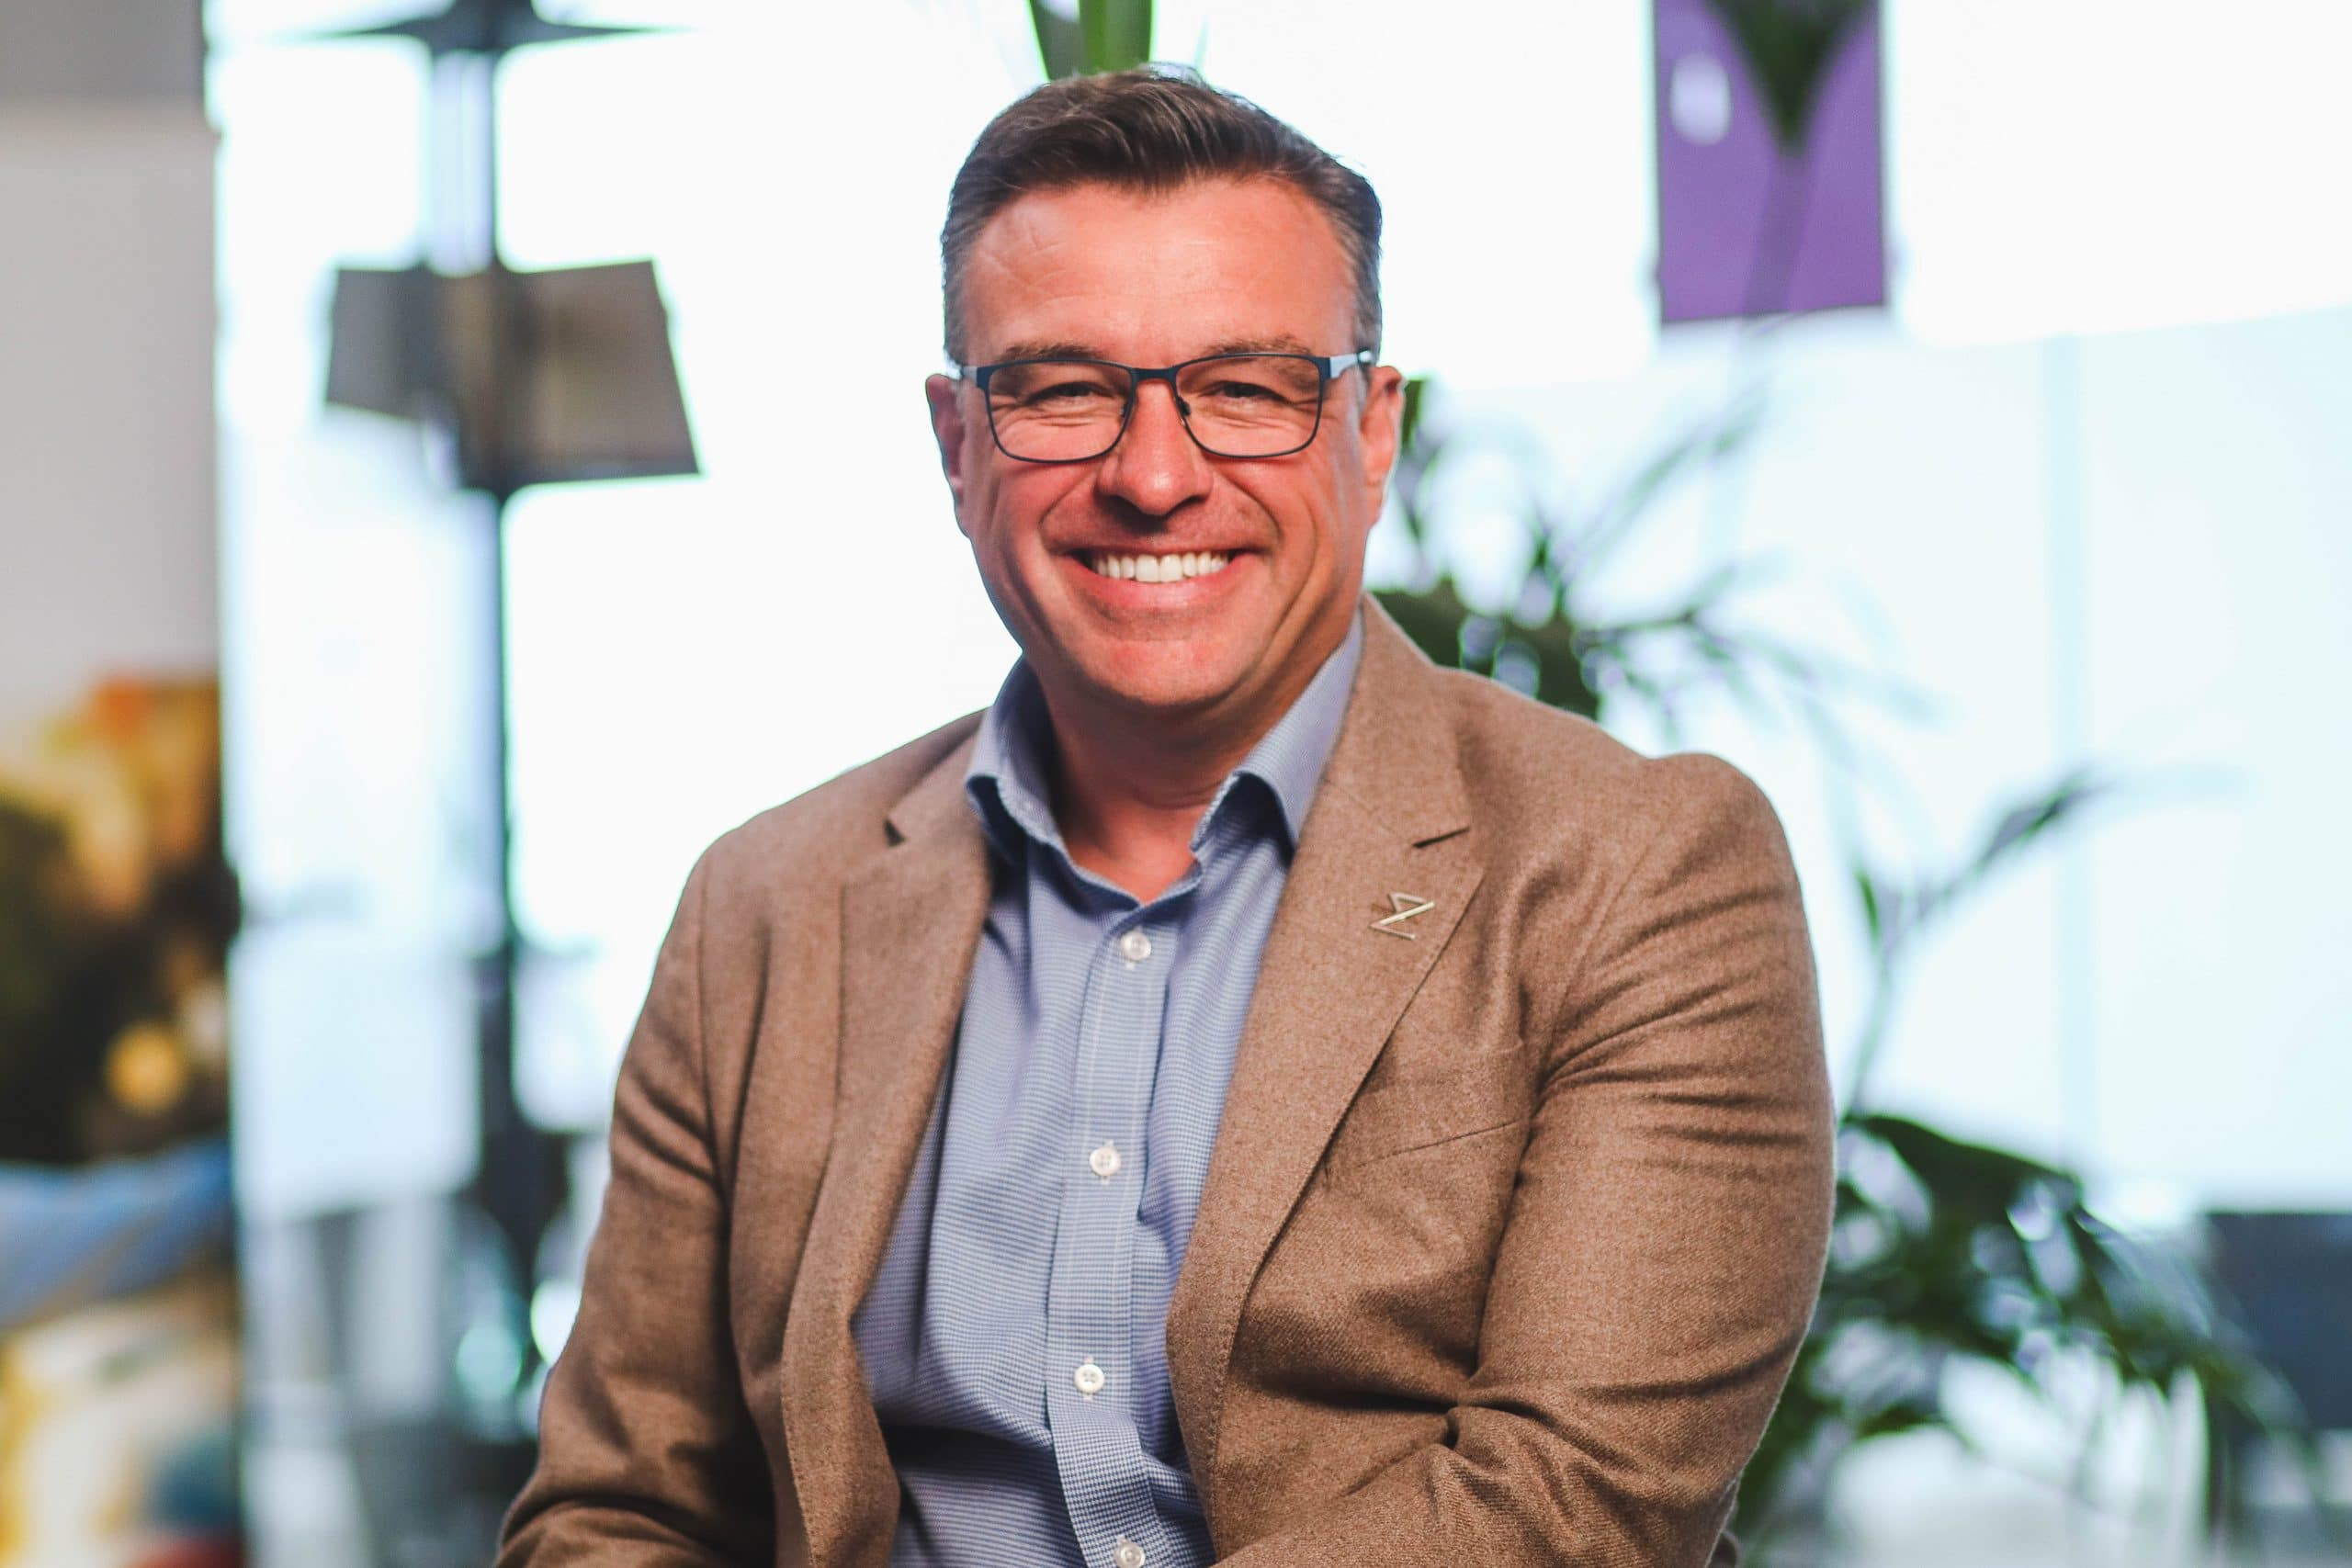 Portrait of Morgan Browne, CEO